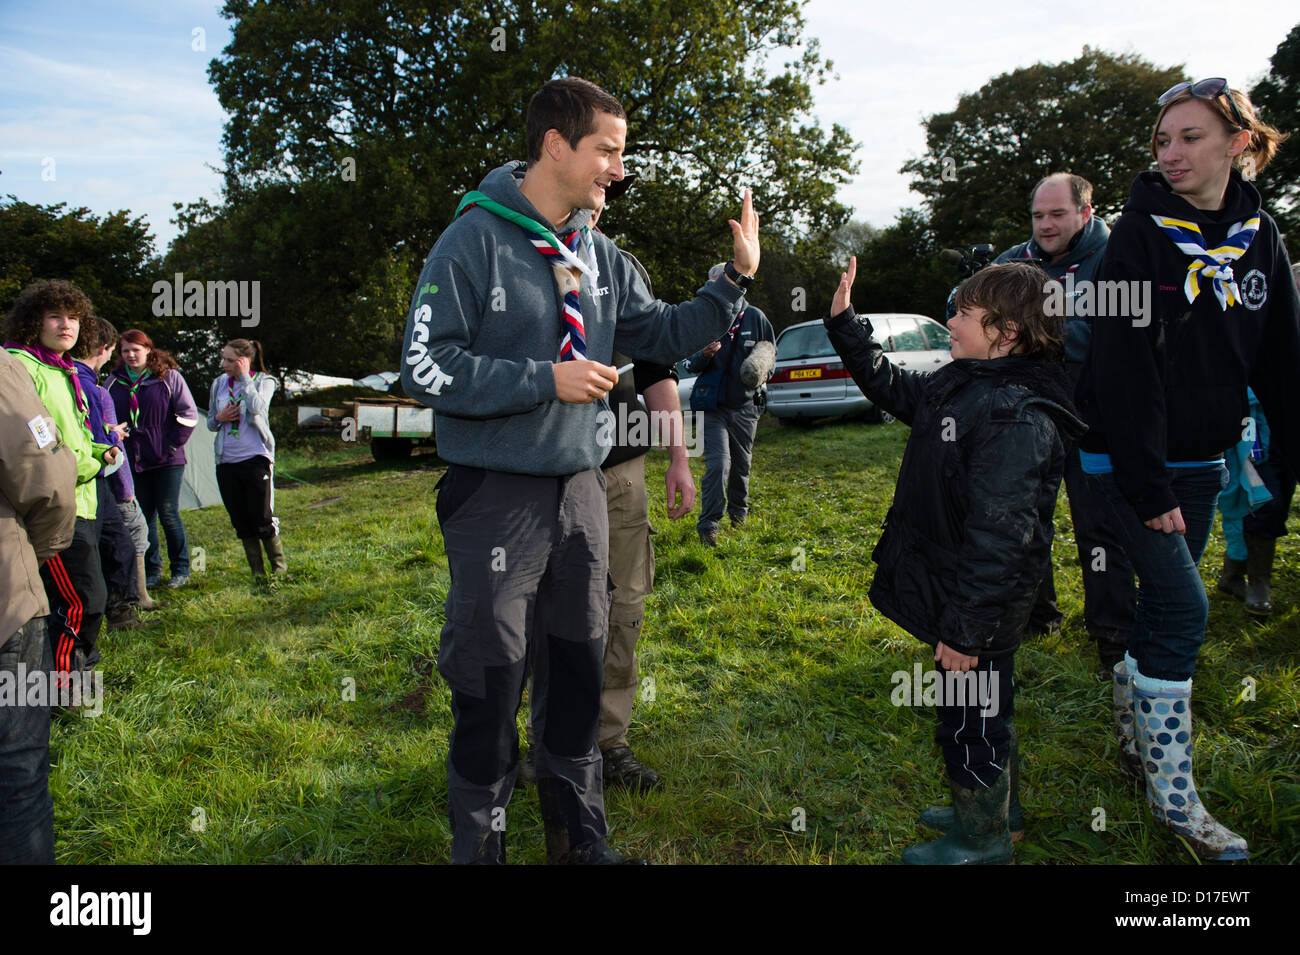 Scout Camp Uk Stock Photos &- Scout Camp Uk Stock Images - Alamy